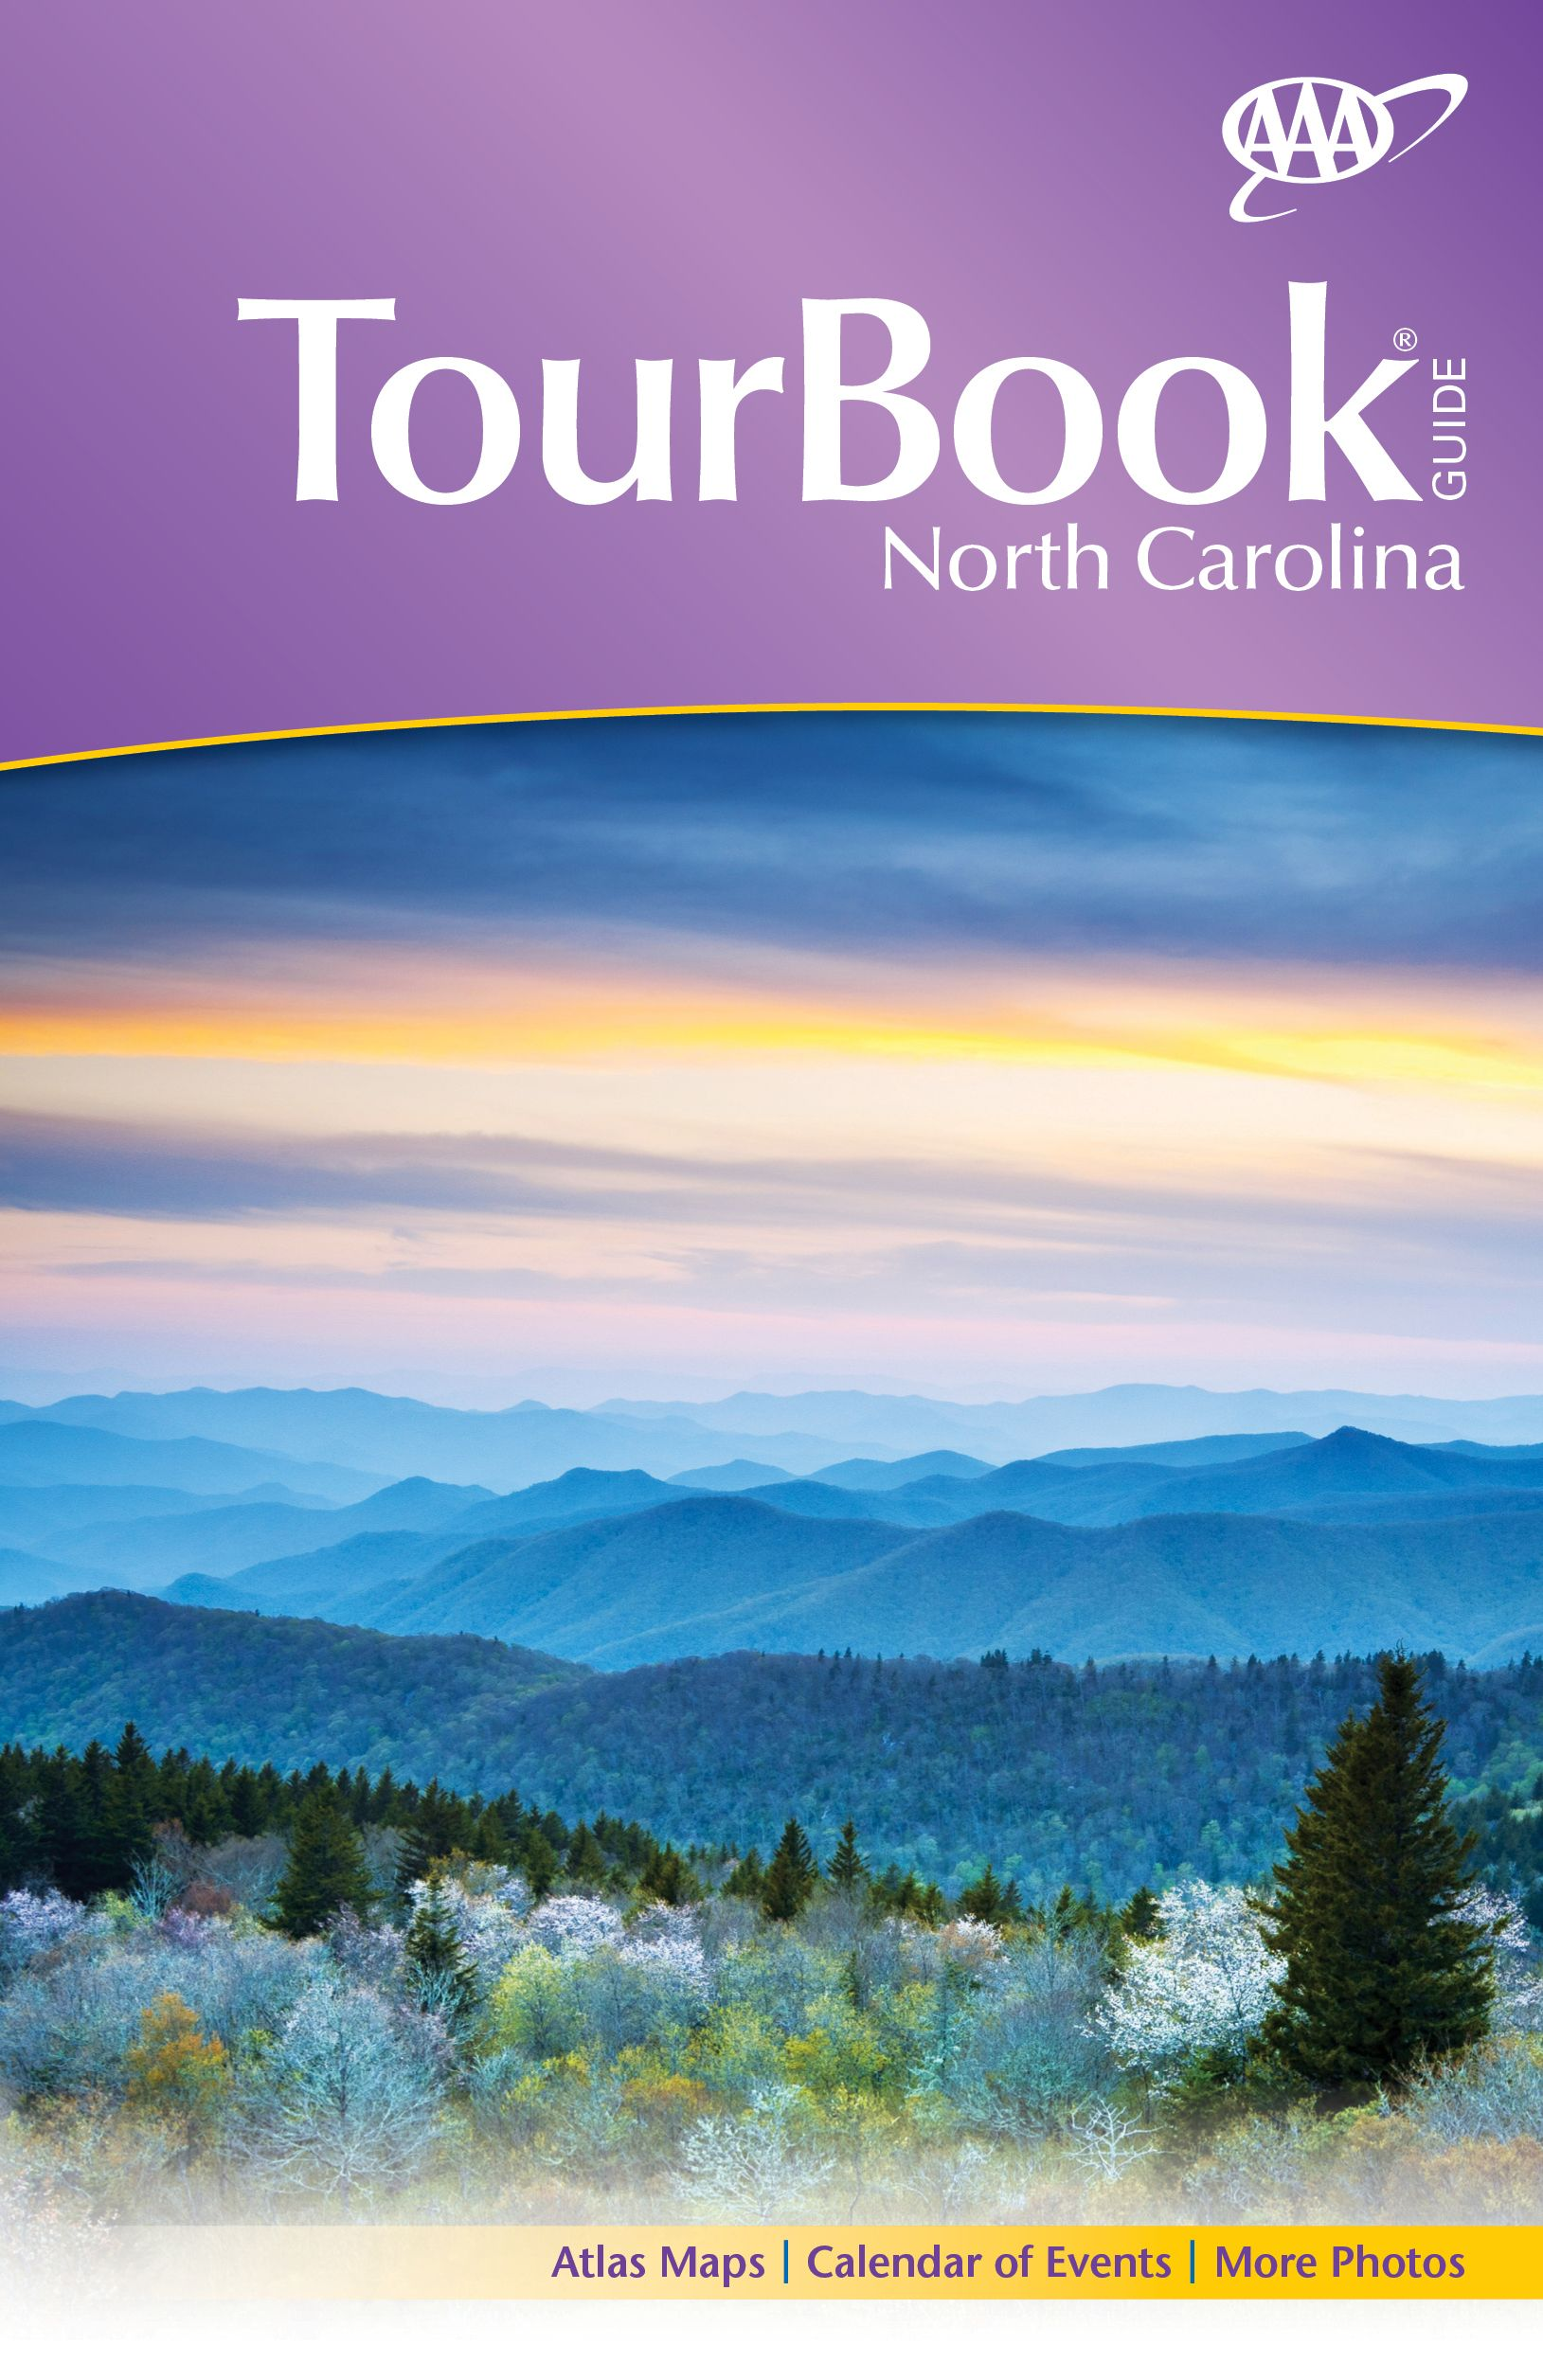 2014 North Carolina AAA TourBook edition valid through